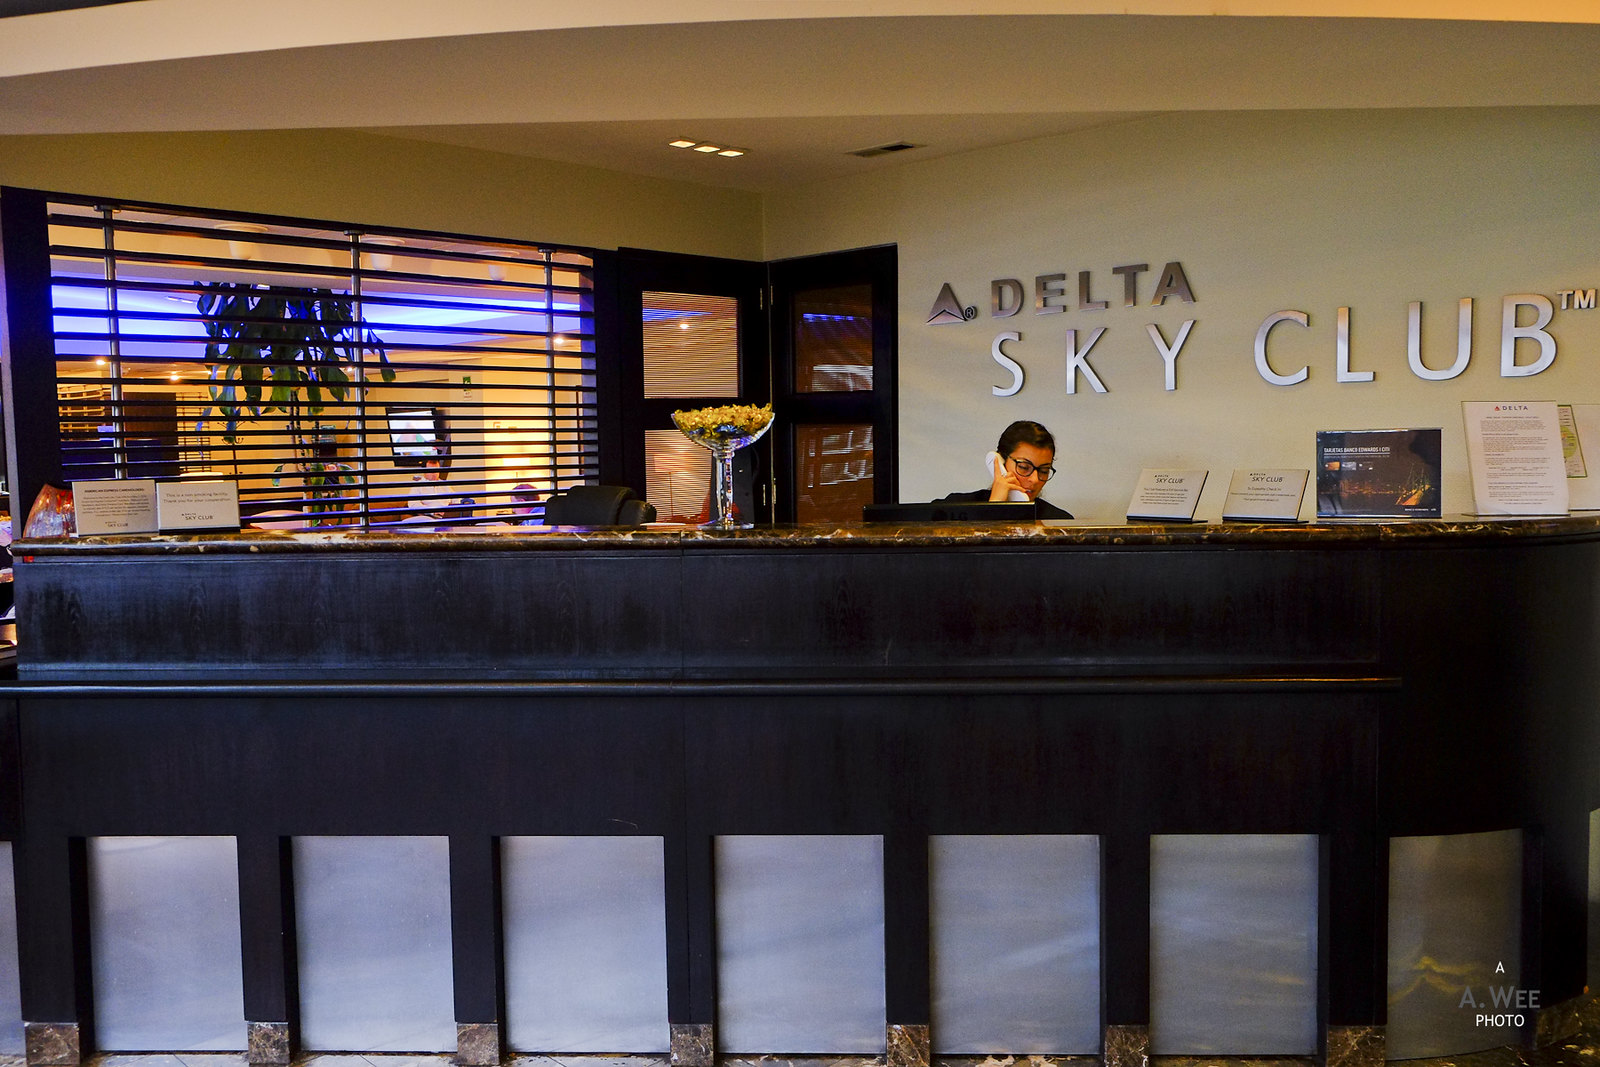 Sky Club reception